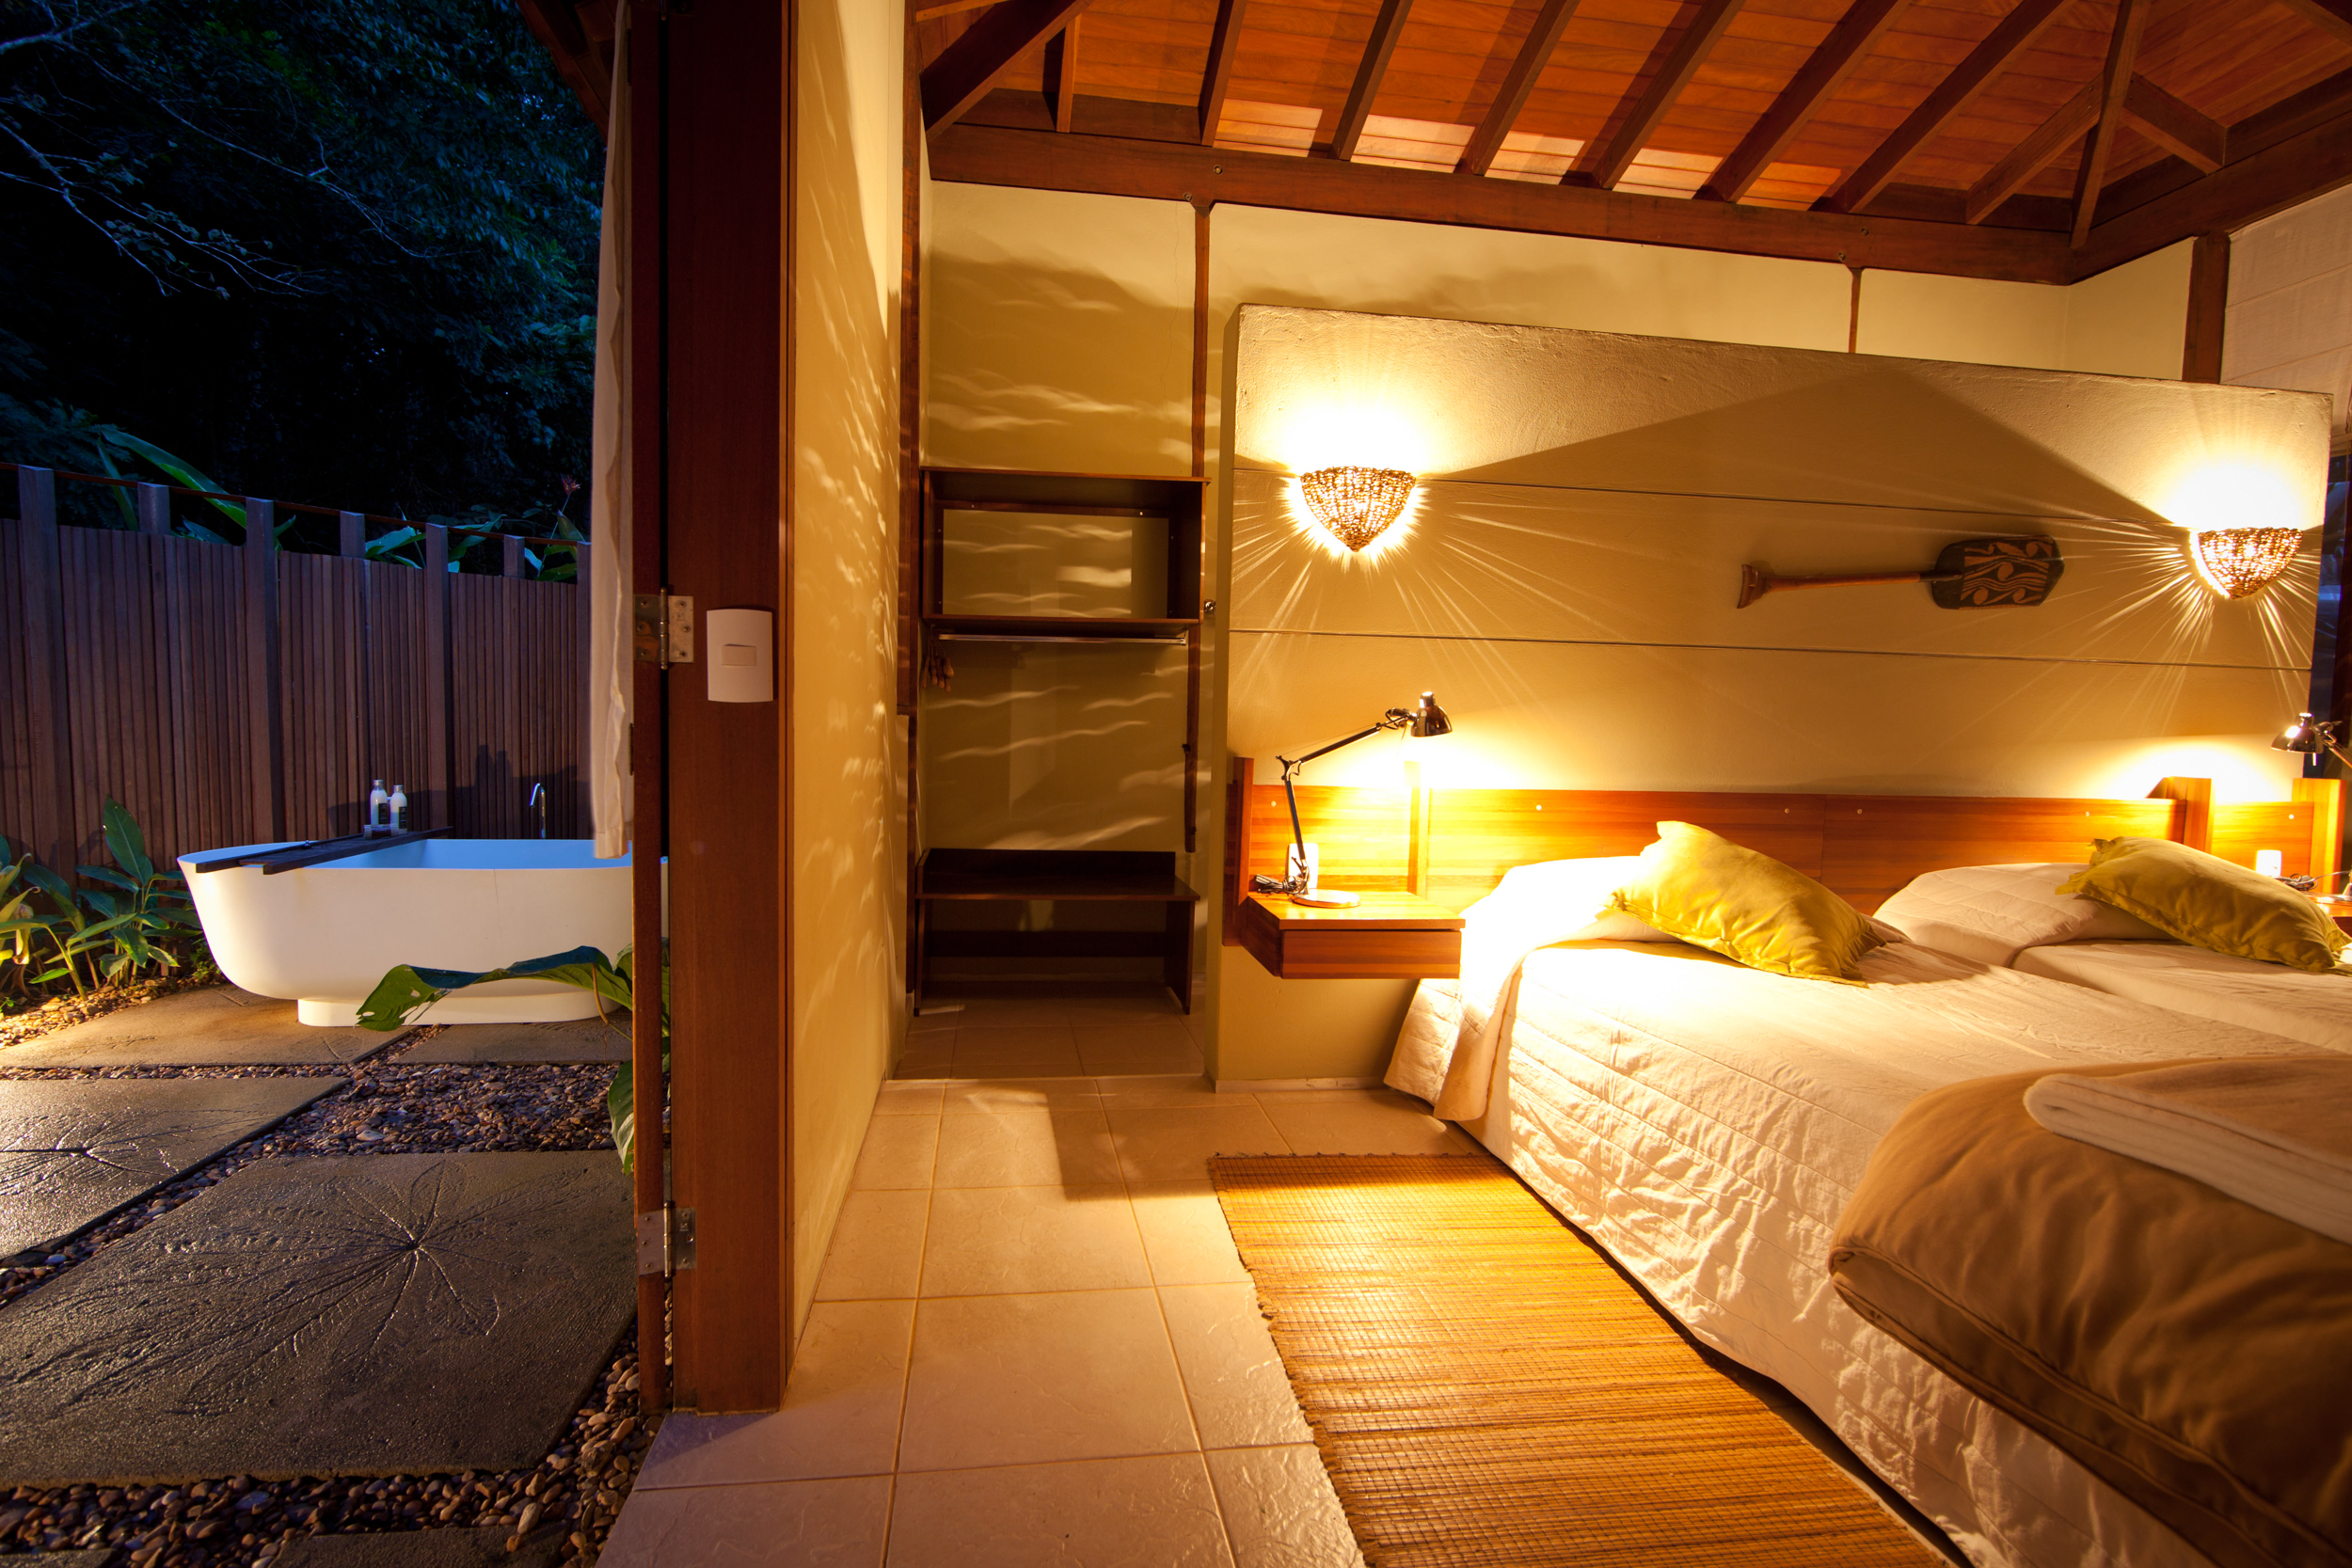 Cristalino Jungle Lodge Special Bungalow - Bungalow and private bathtub- Samuel Melim